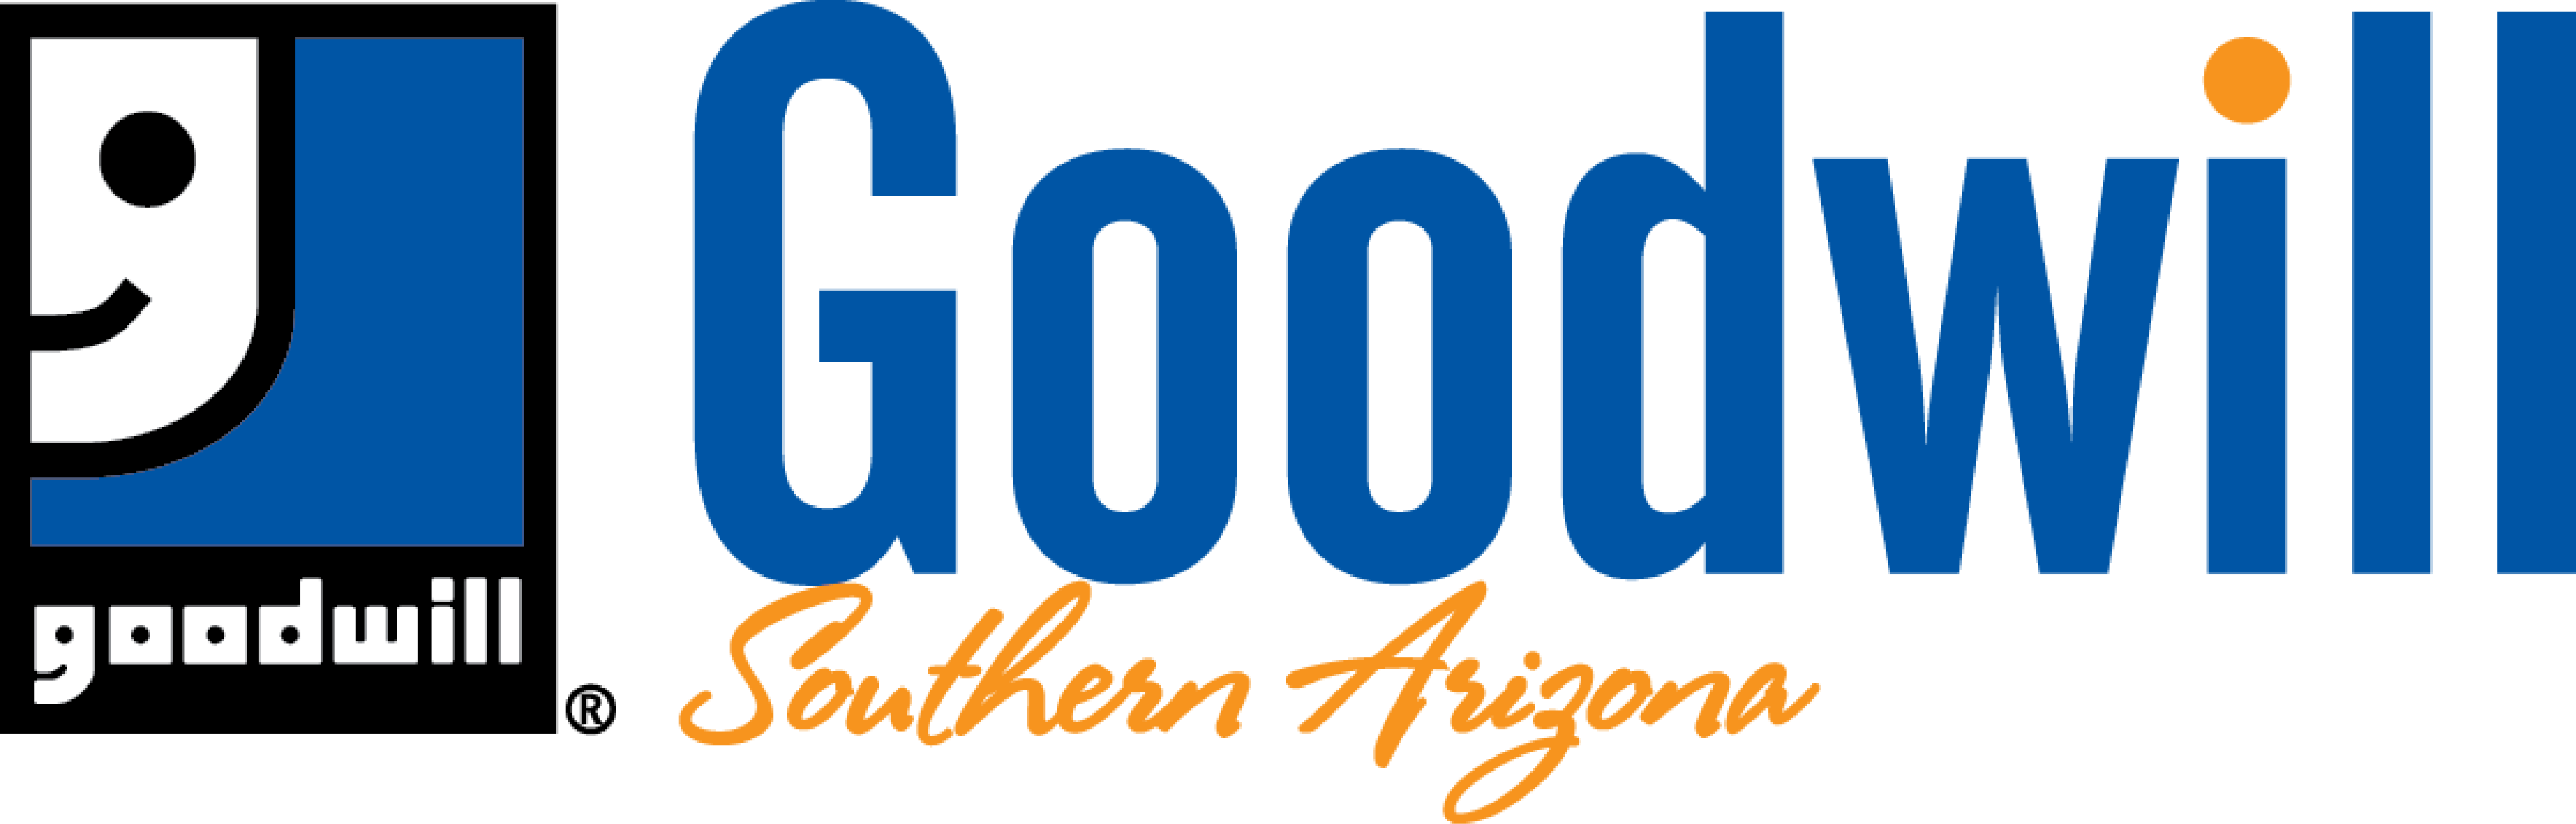 Goodwill 50 Off Saturday Calendar 2021 Arizona News & Events | Goodwill Industries of Southern Arizona